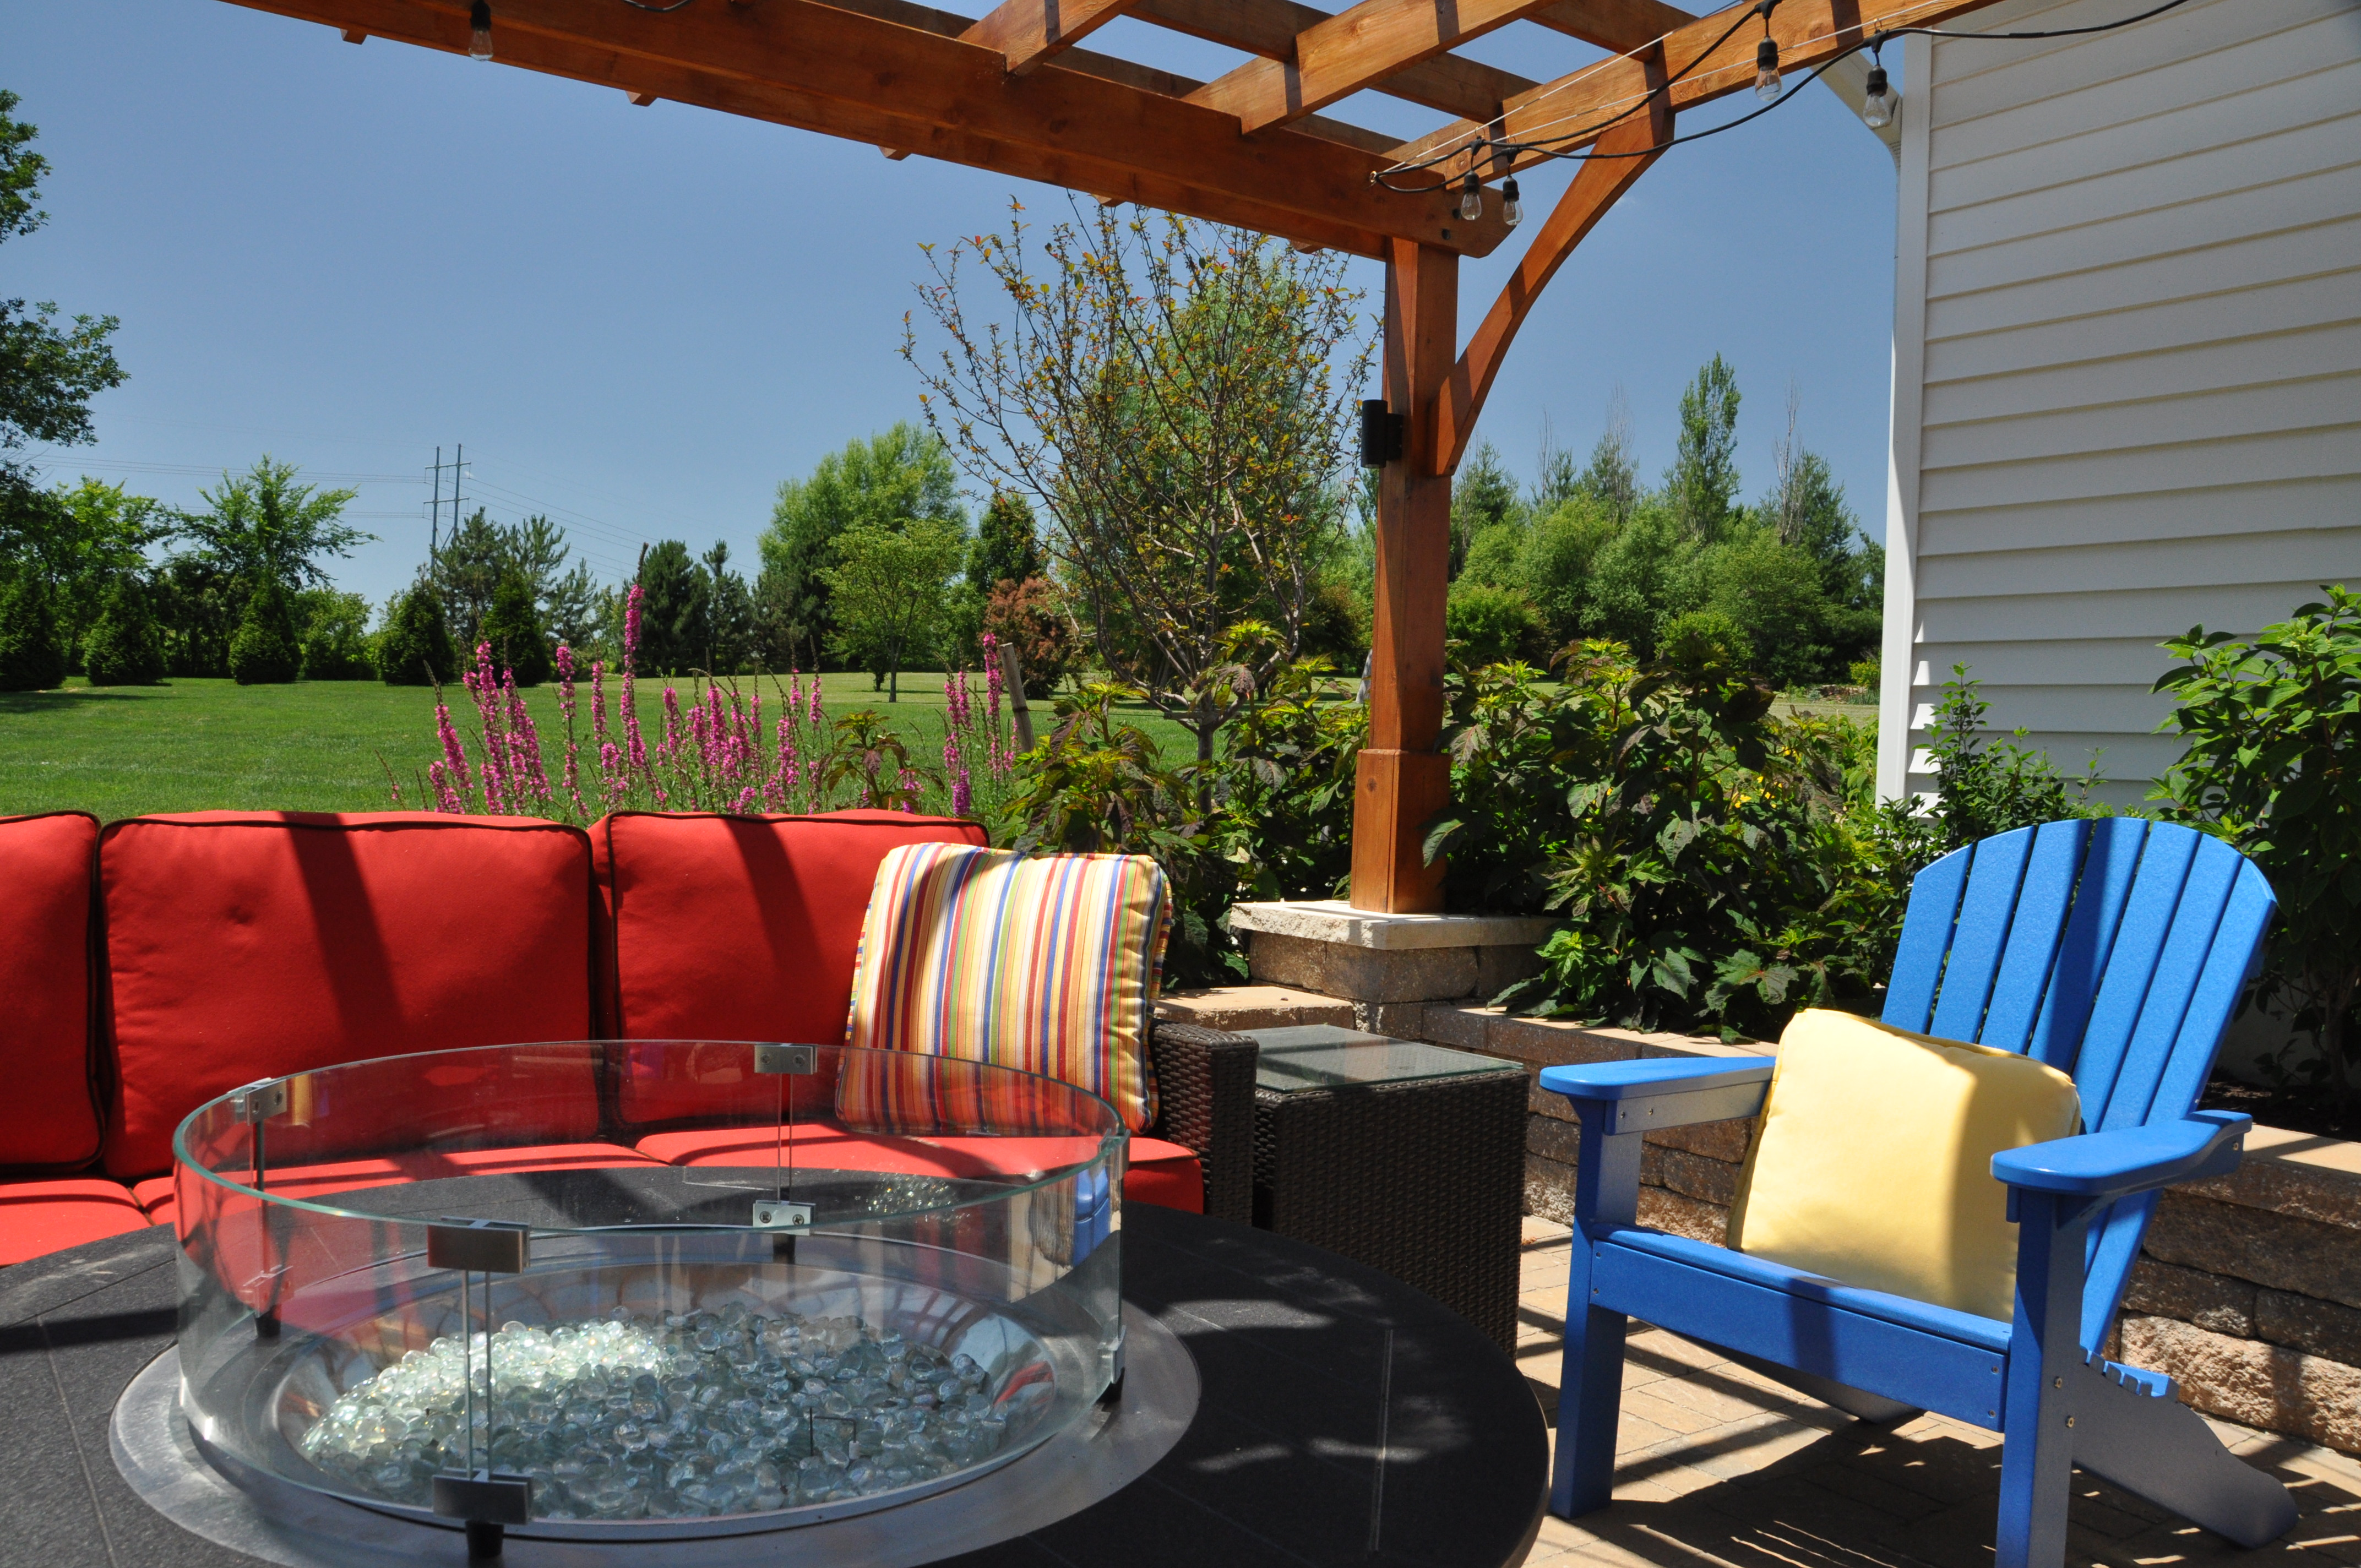 Fire pits set tthe stage for outdoor entertaining in any season.